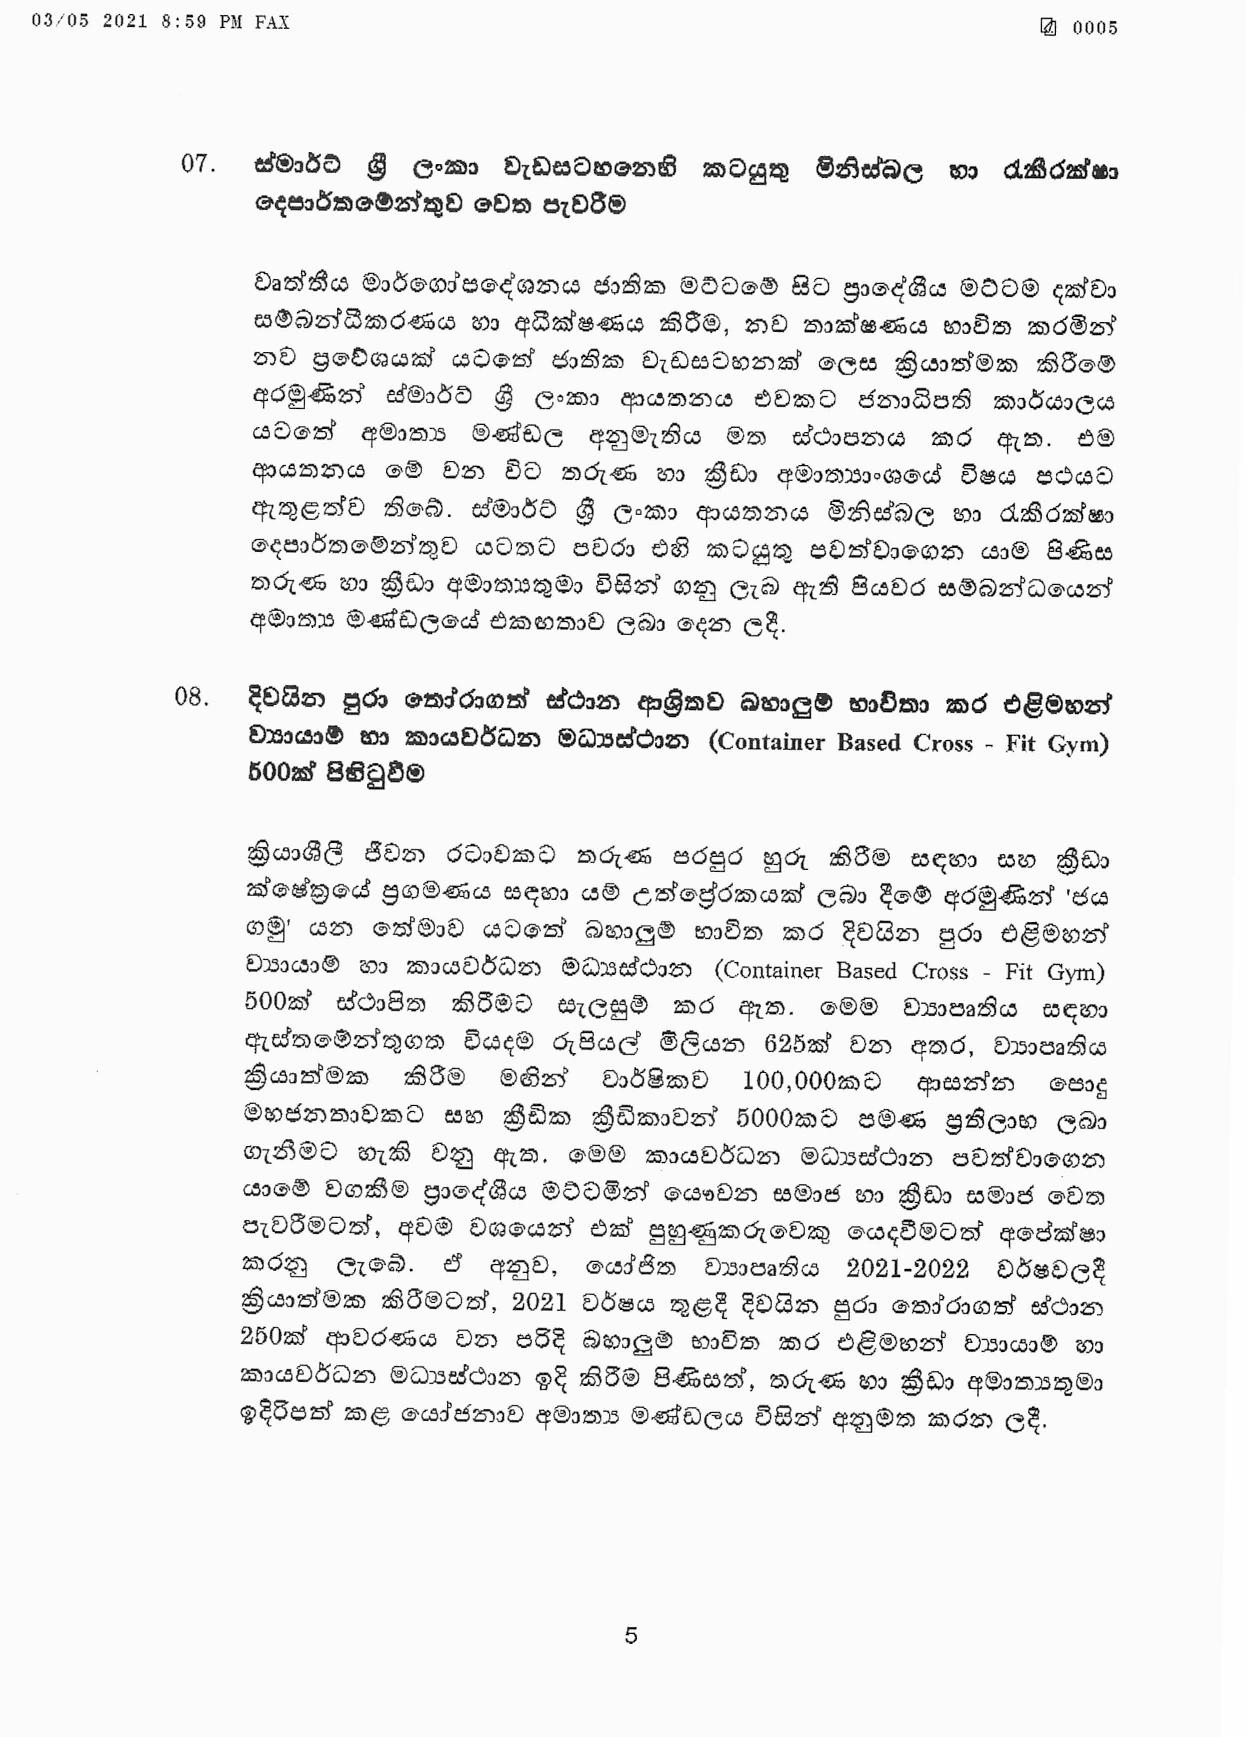 Cabinet Decision on 03.05.2021 page 005